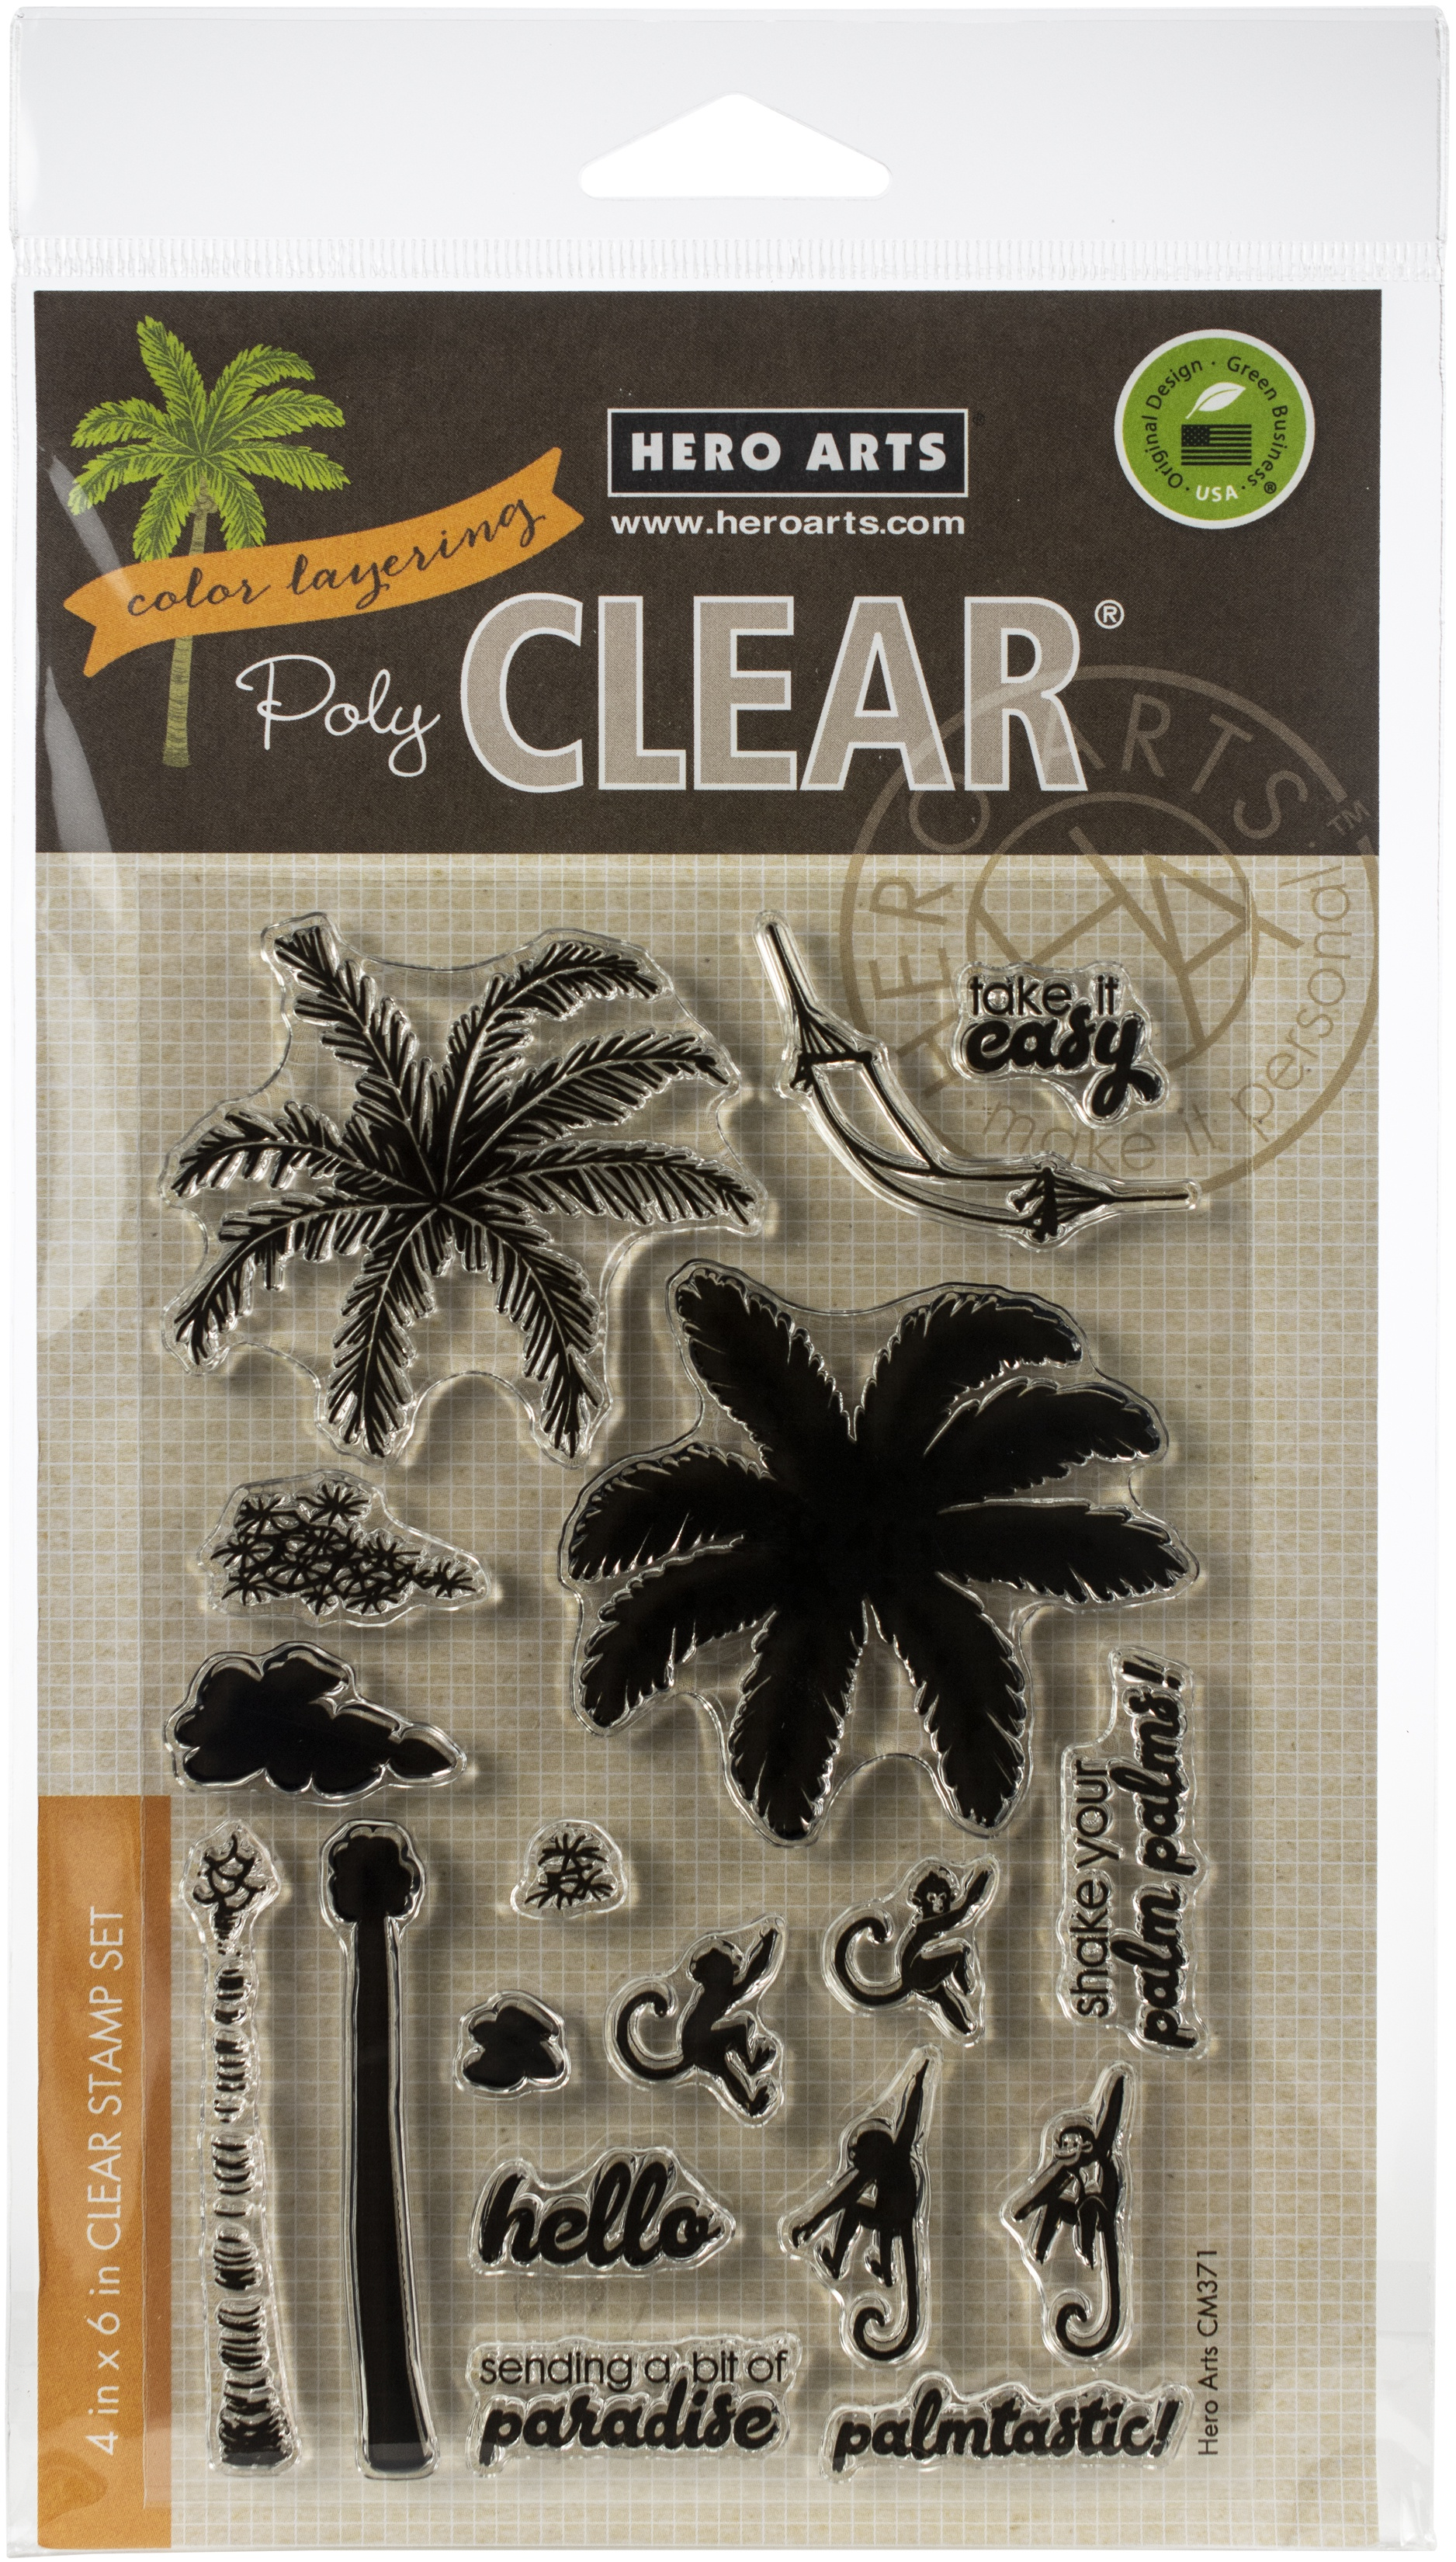 Hero Arts Color Layering Clear Stamps 4X6-Palm Tree